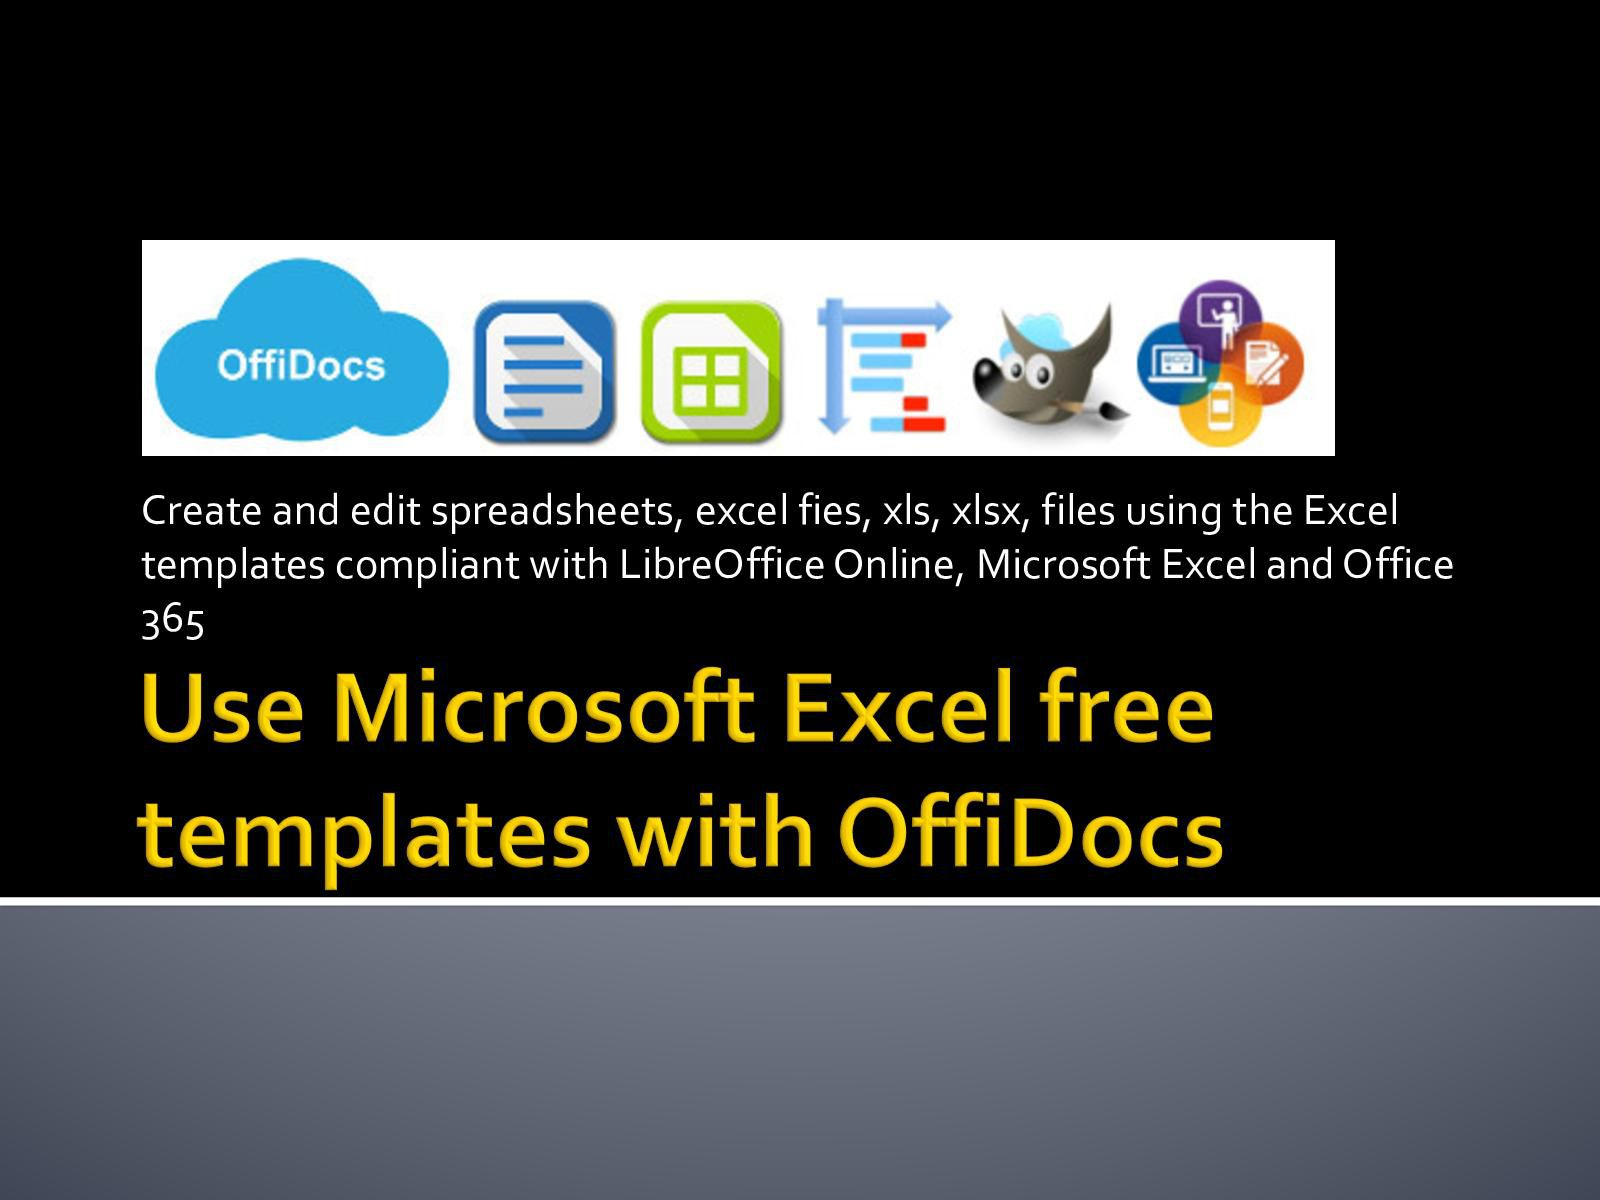 008 Unbelievable Free Microsoft Excel Template Image  Templates Online Invoice Calendar AccountingFull